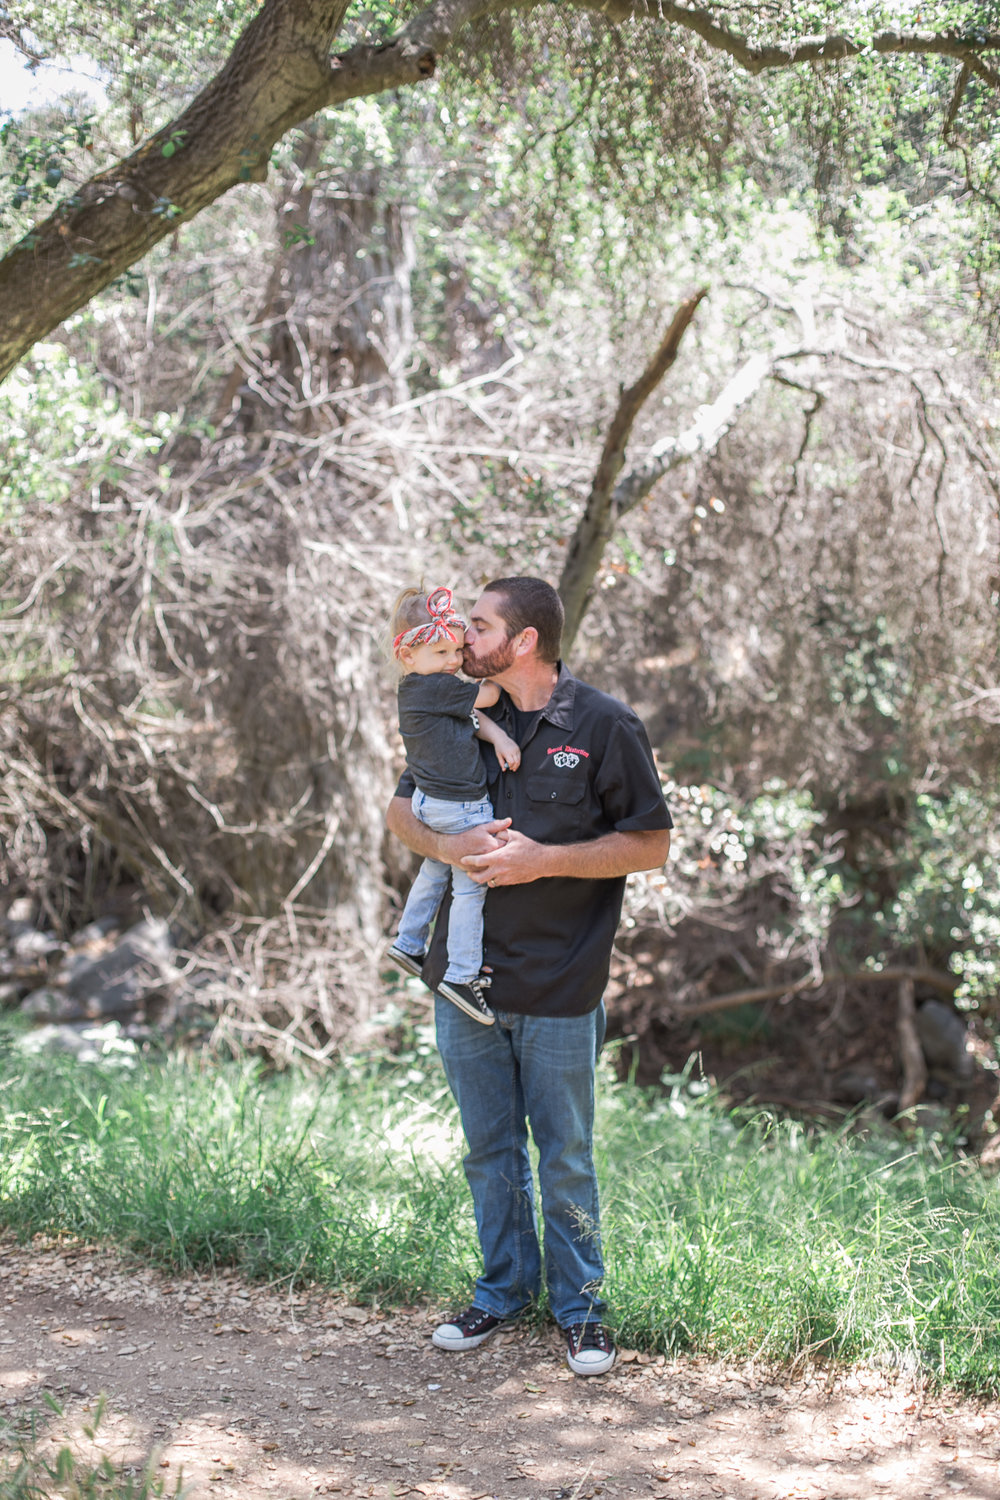 Great_Woodland_Photography_TheTobins_ Felicita Park_Escondido_Family_Session-12.jpg